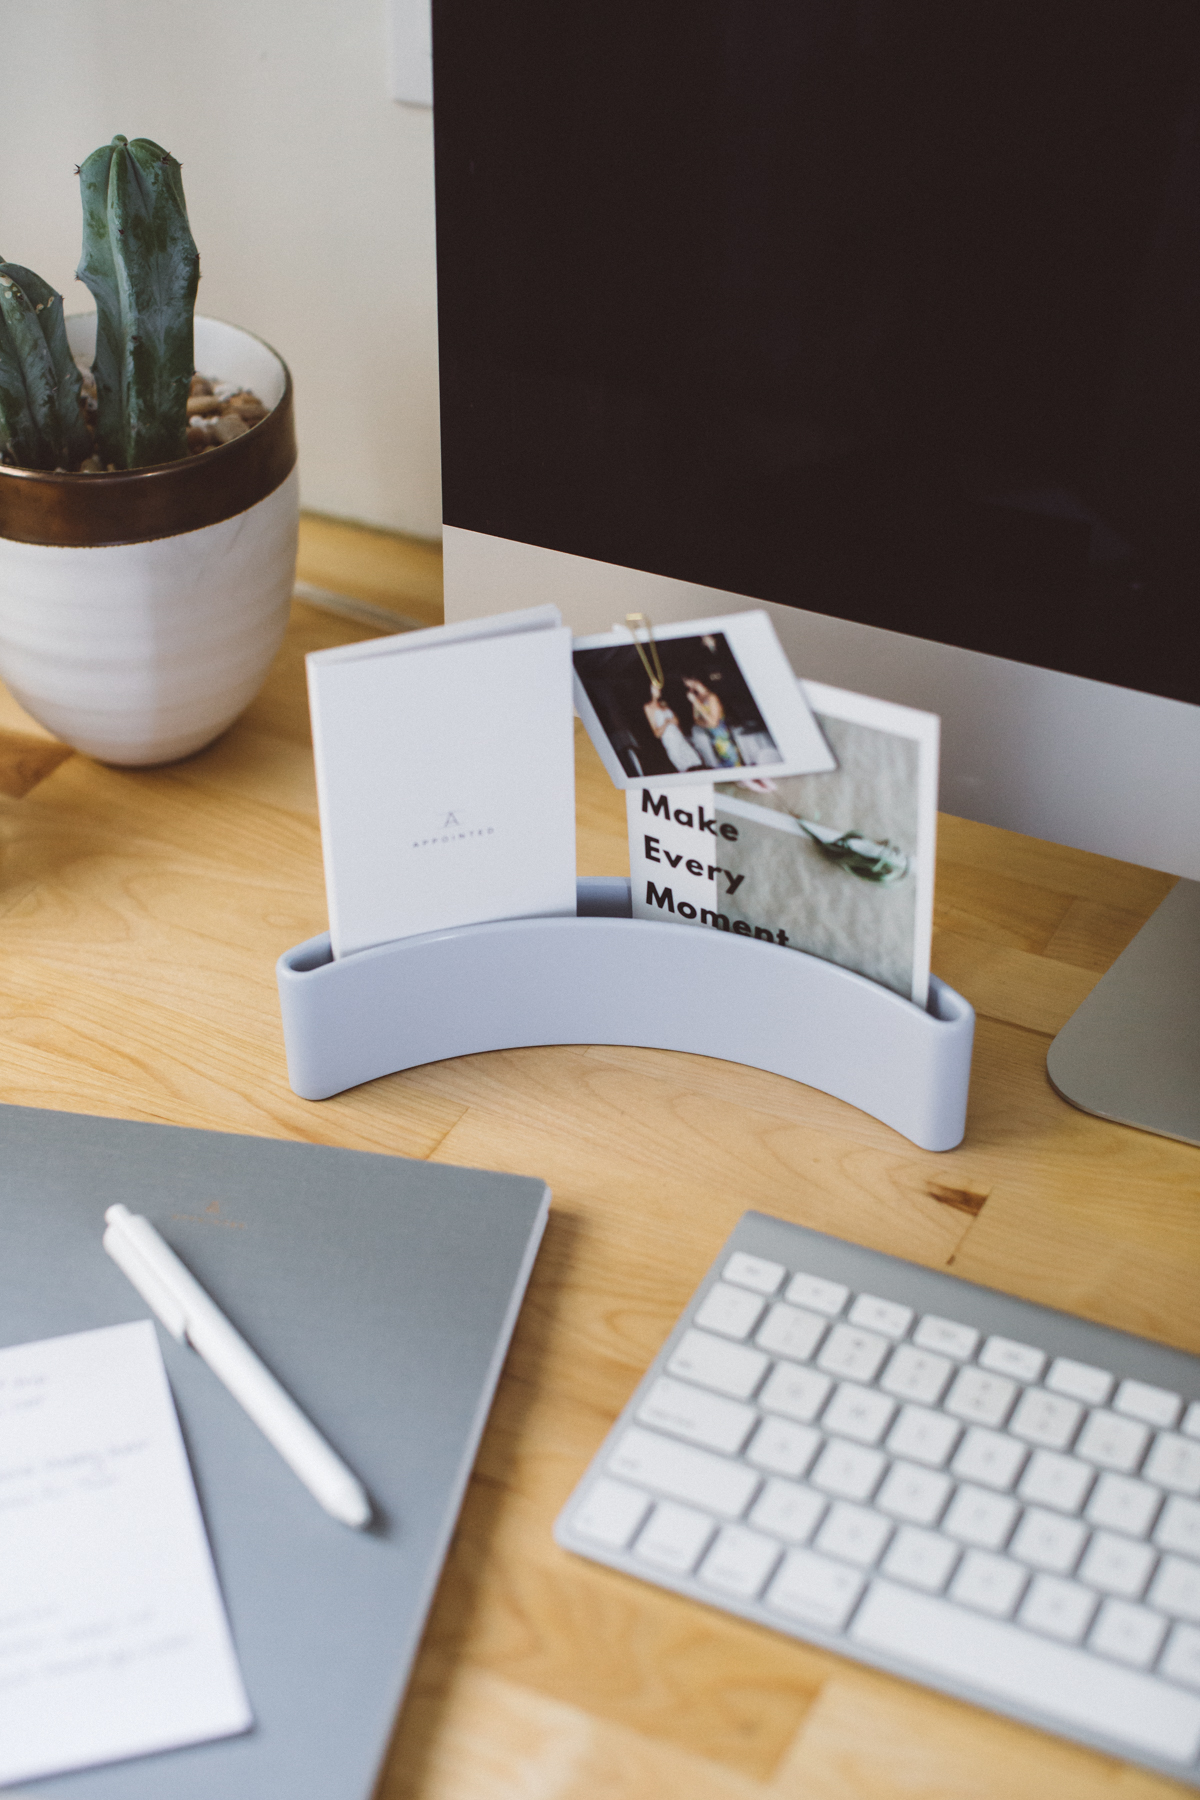 For working - Make your desk a place to inspire your work